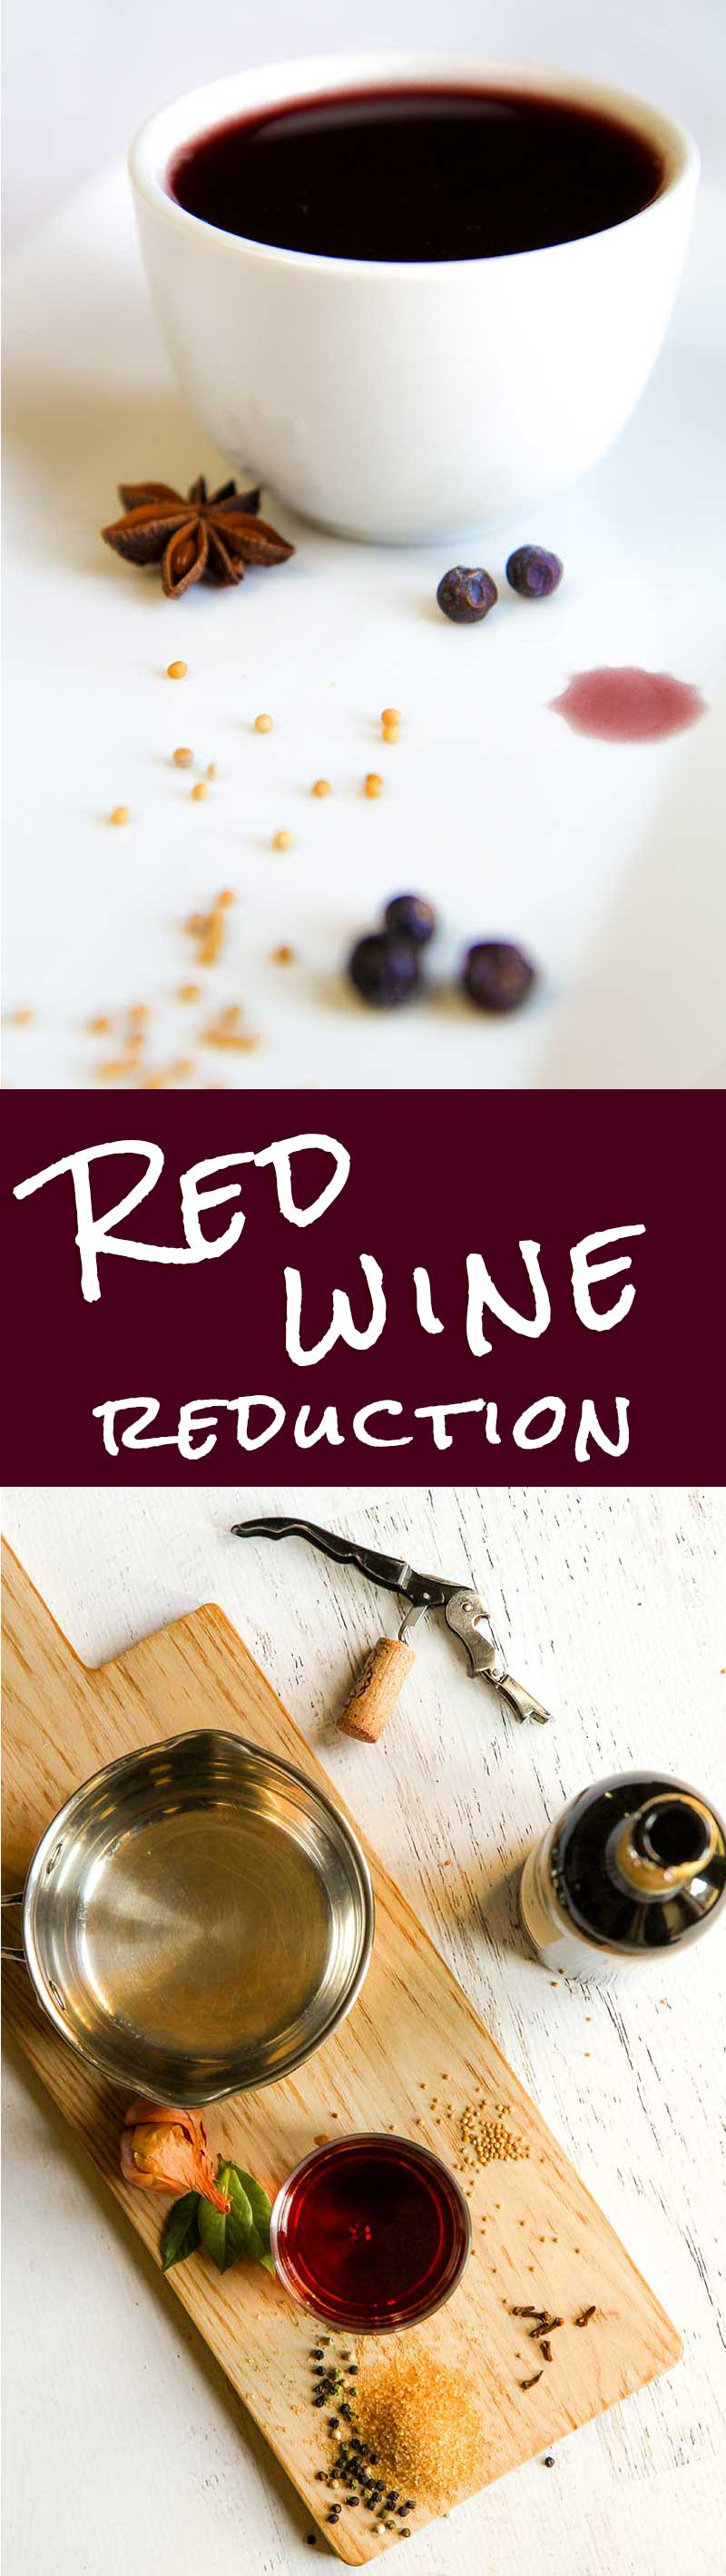 RED WINE REDUCTION RECIPE